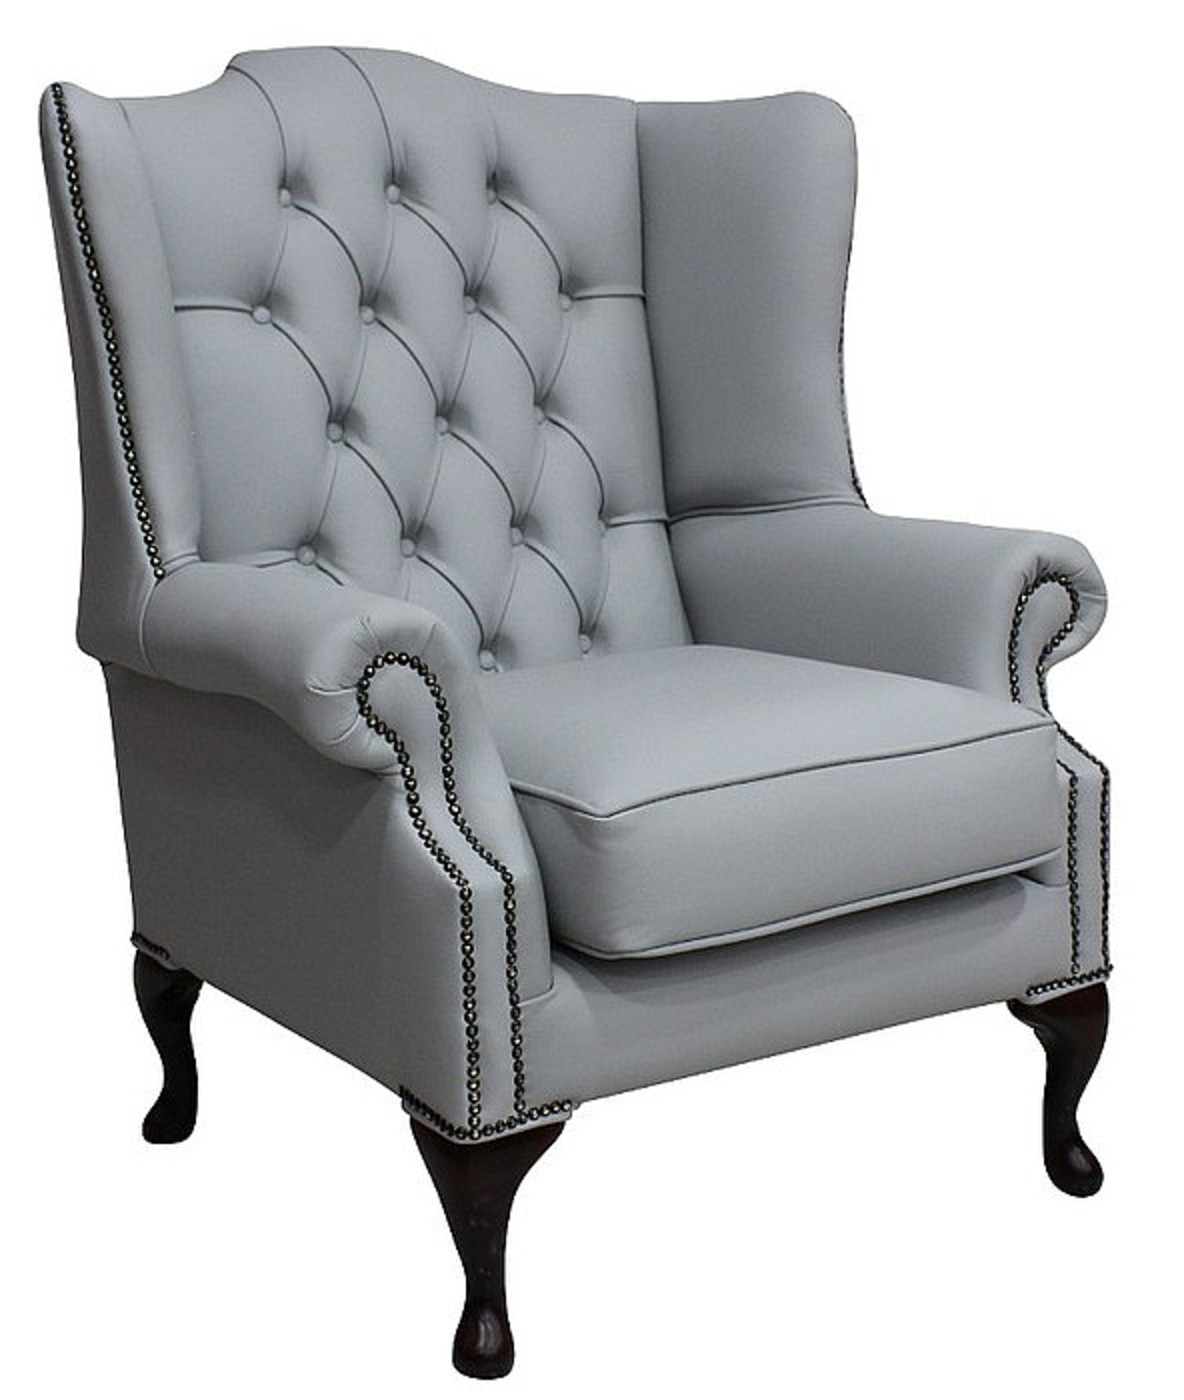 Merveilleux Chesterfield Mallory Flat Wing Queen Anne High Back Wing Chair Silver Grey  Leather